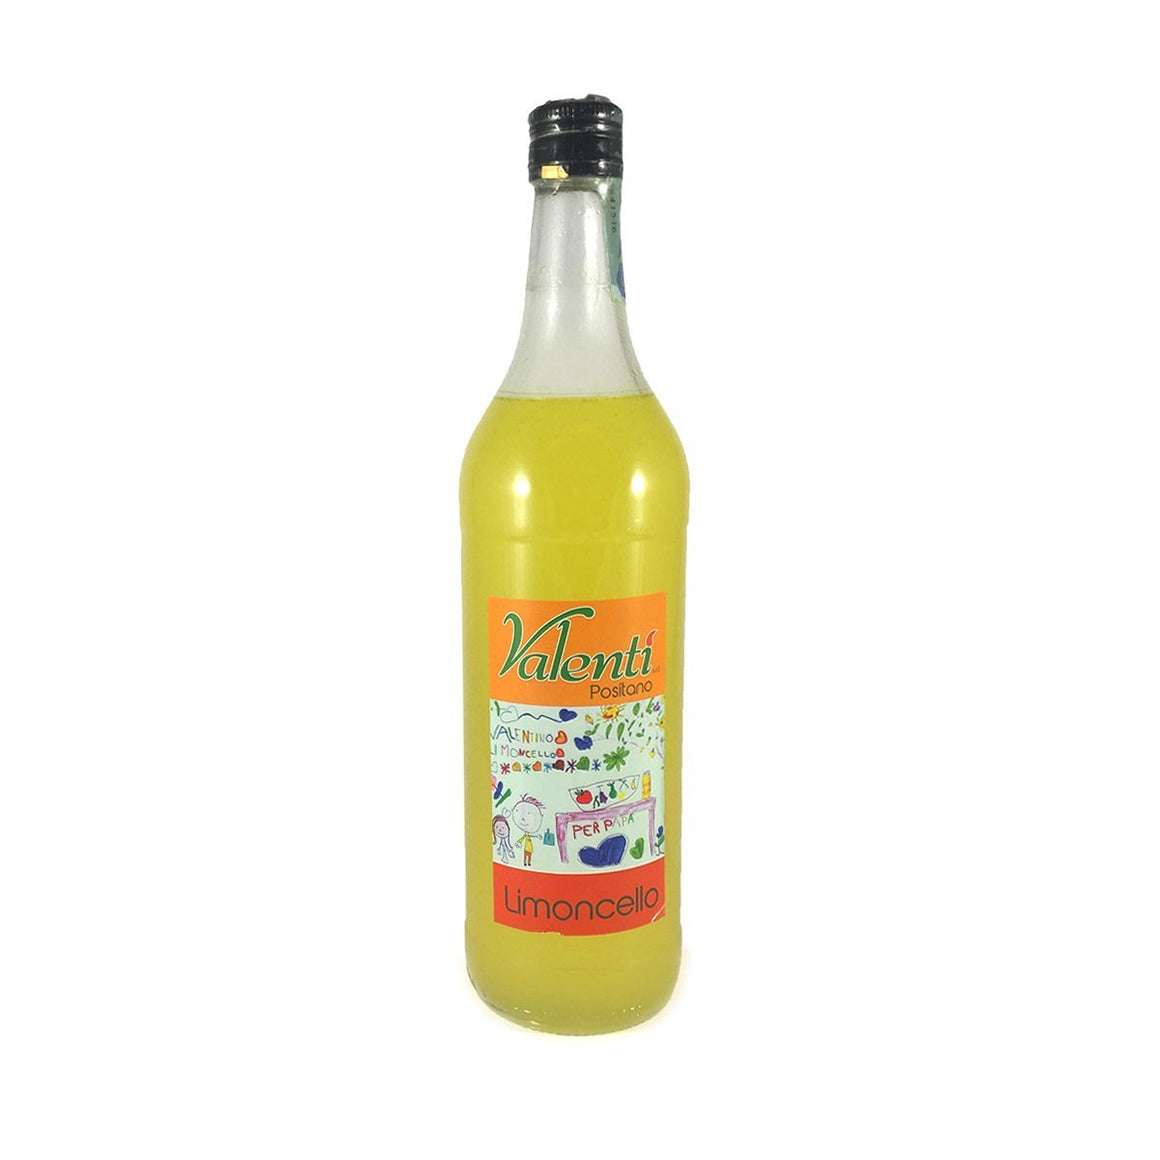 Limoncello Valentì Original of Positano 1000 ml - PepeGusto